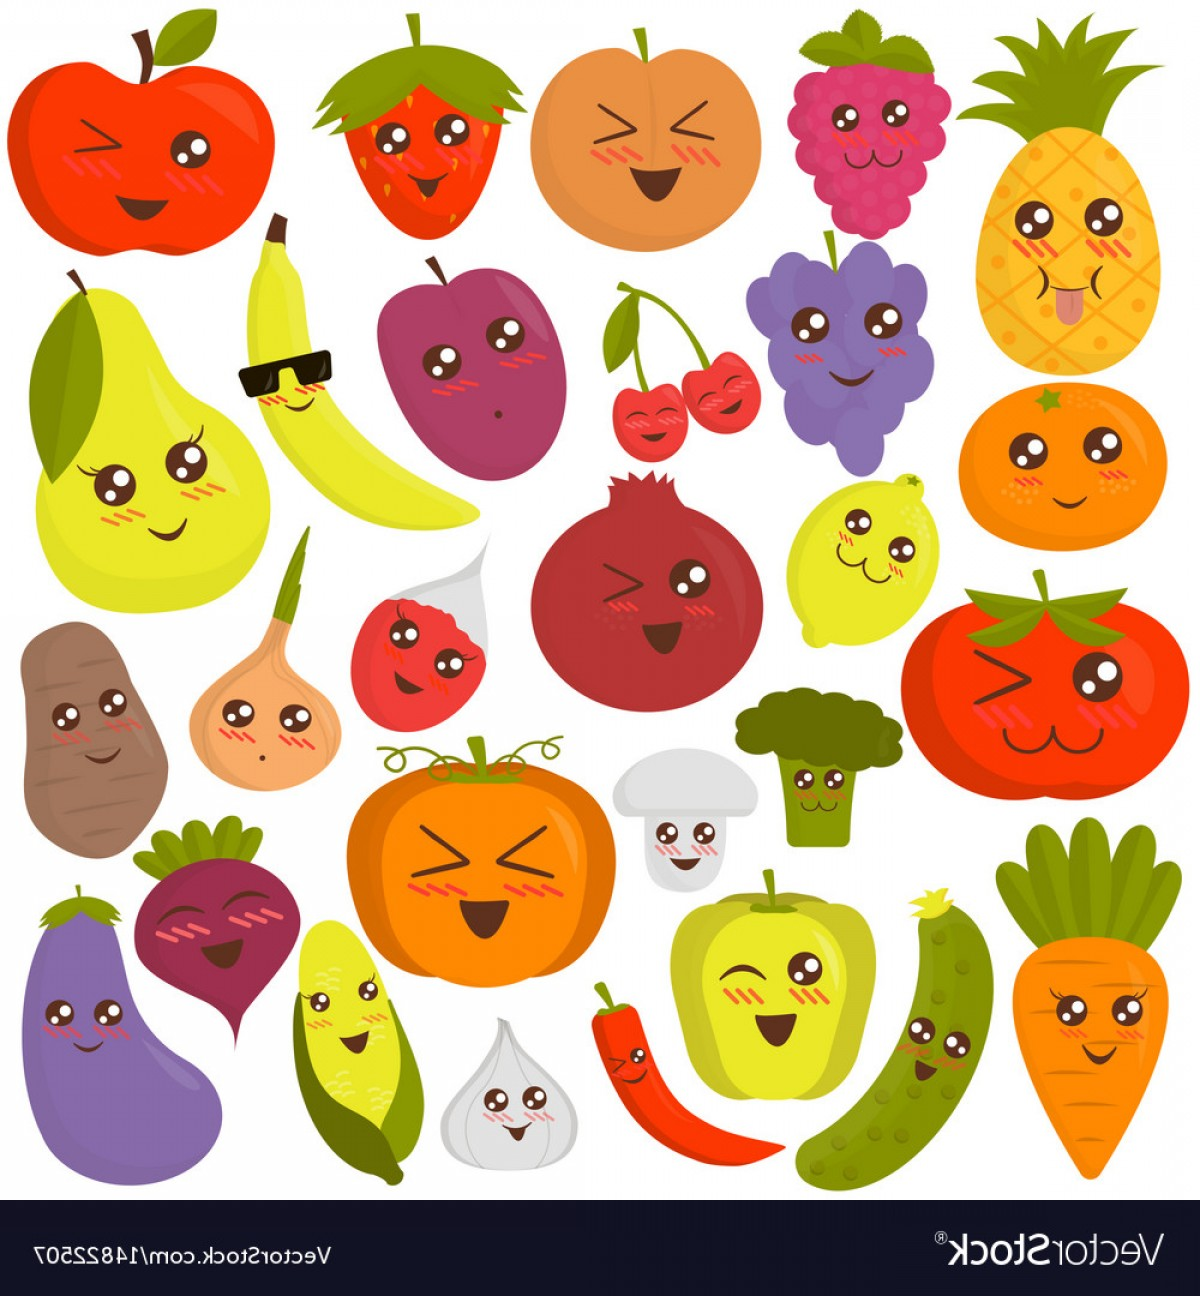 Vector Fruit Vegetable: Cute Vegetables And Fruits Vector